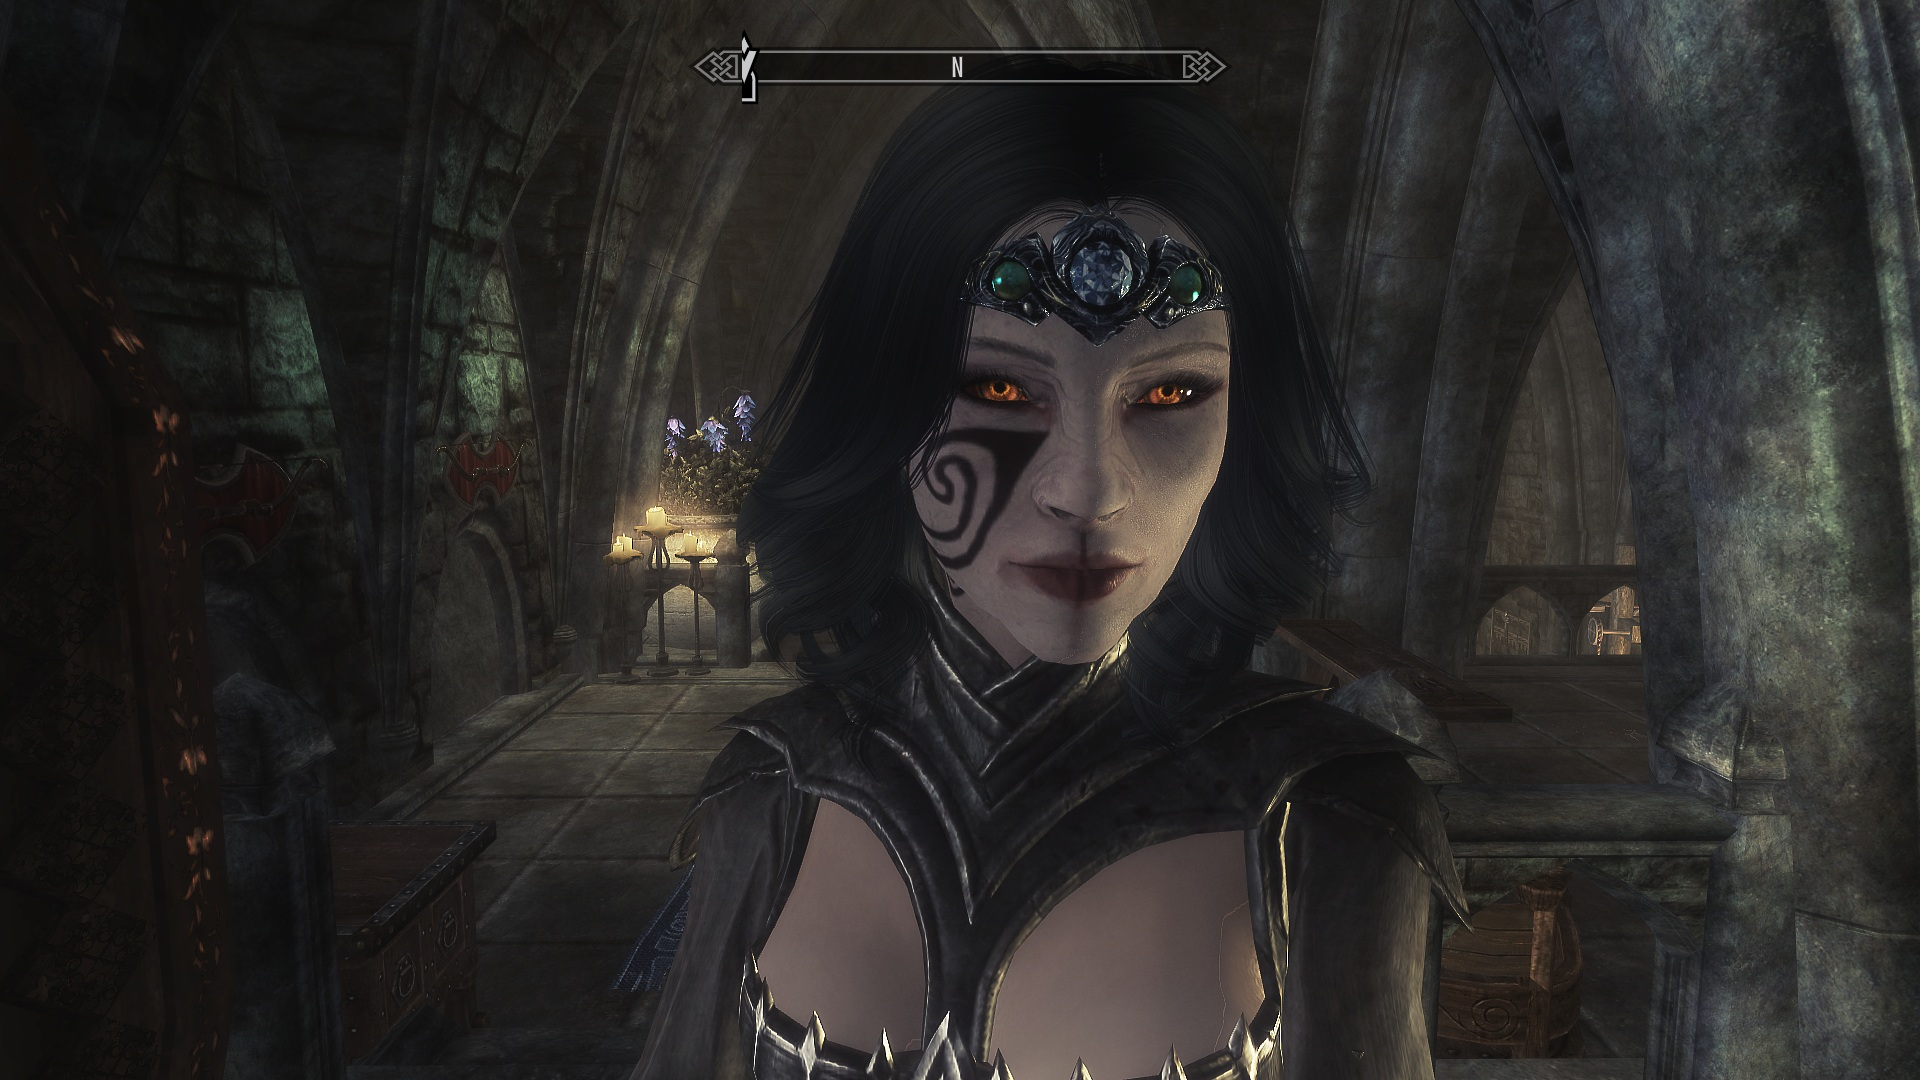 Dawnguard vampires retain your appearance at skyrim nexus mods keldis voltagebd Choice Image